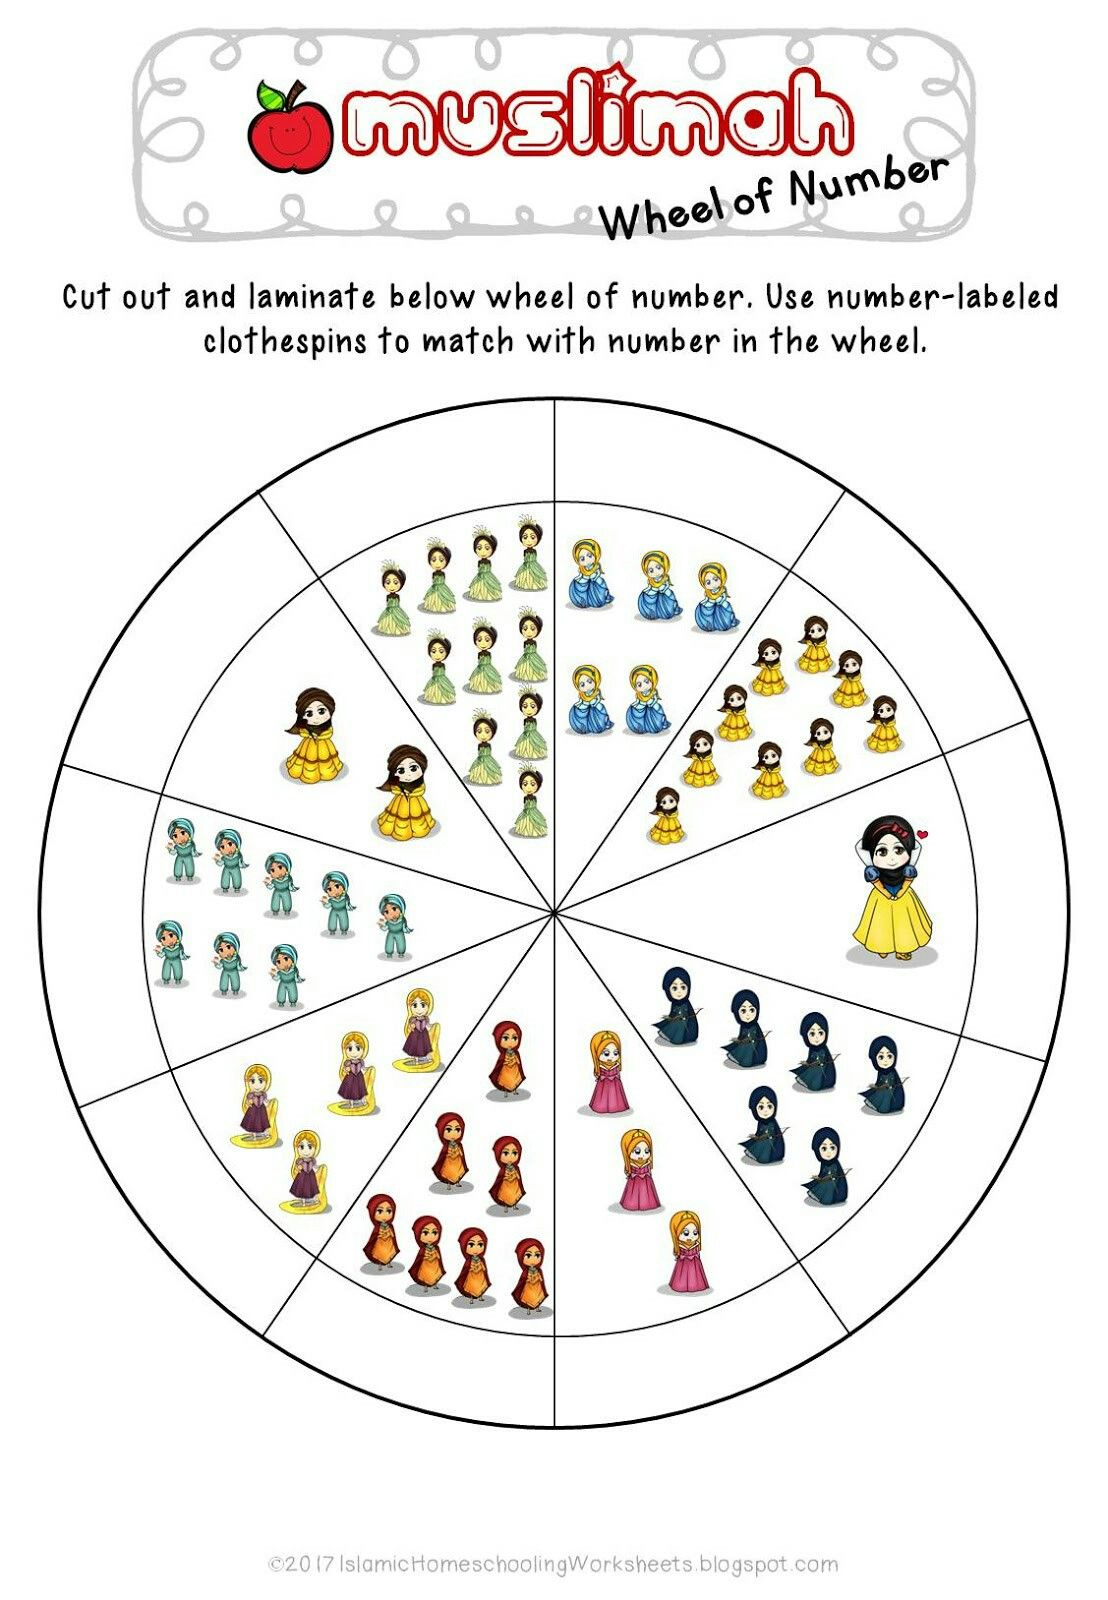 Free Muslimah Wheel Of Number In Disney Princess Preschool